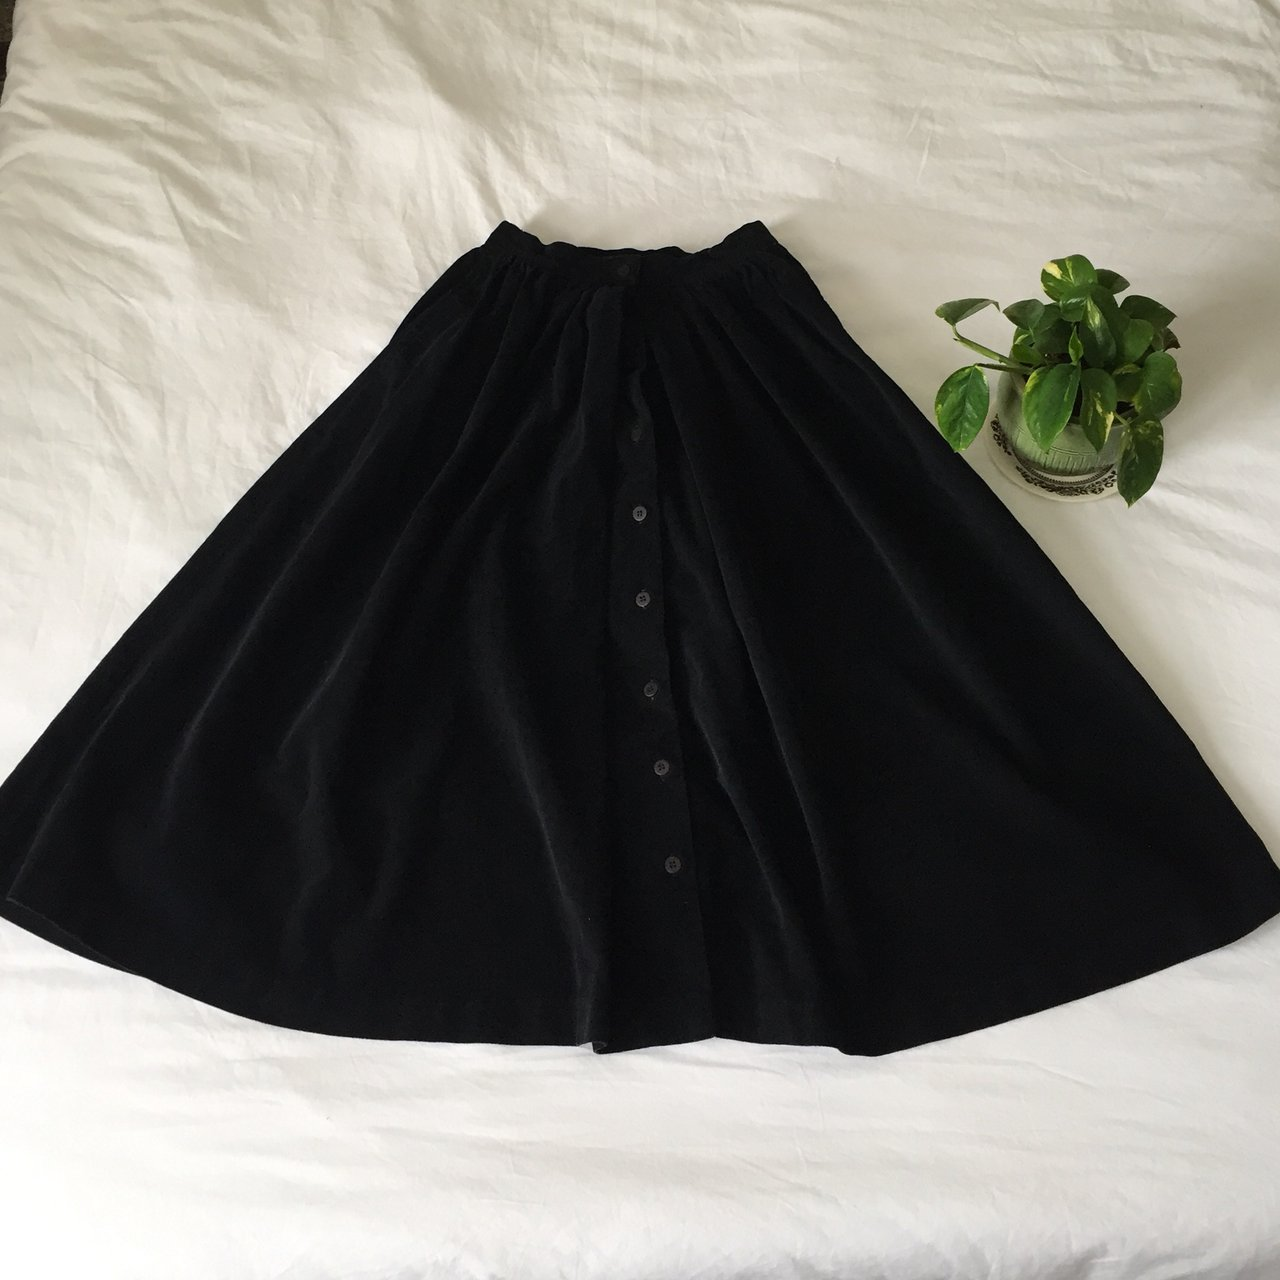 31115a9192 FREE SHIPPING! Vintage Black Corduroy Button Down Midi 100% - Depop